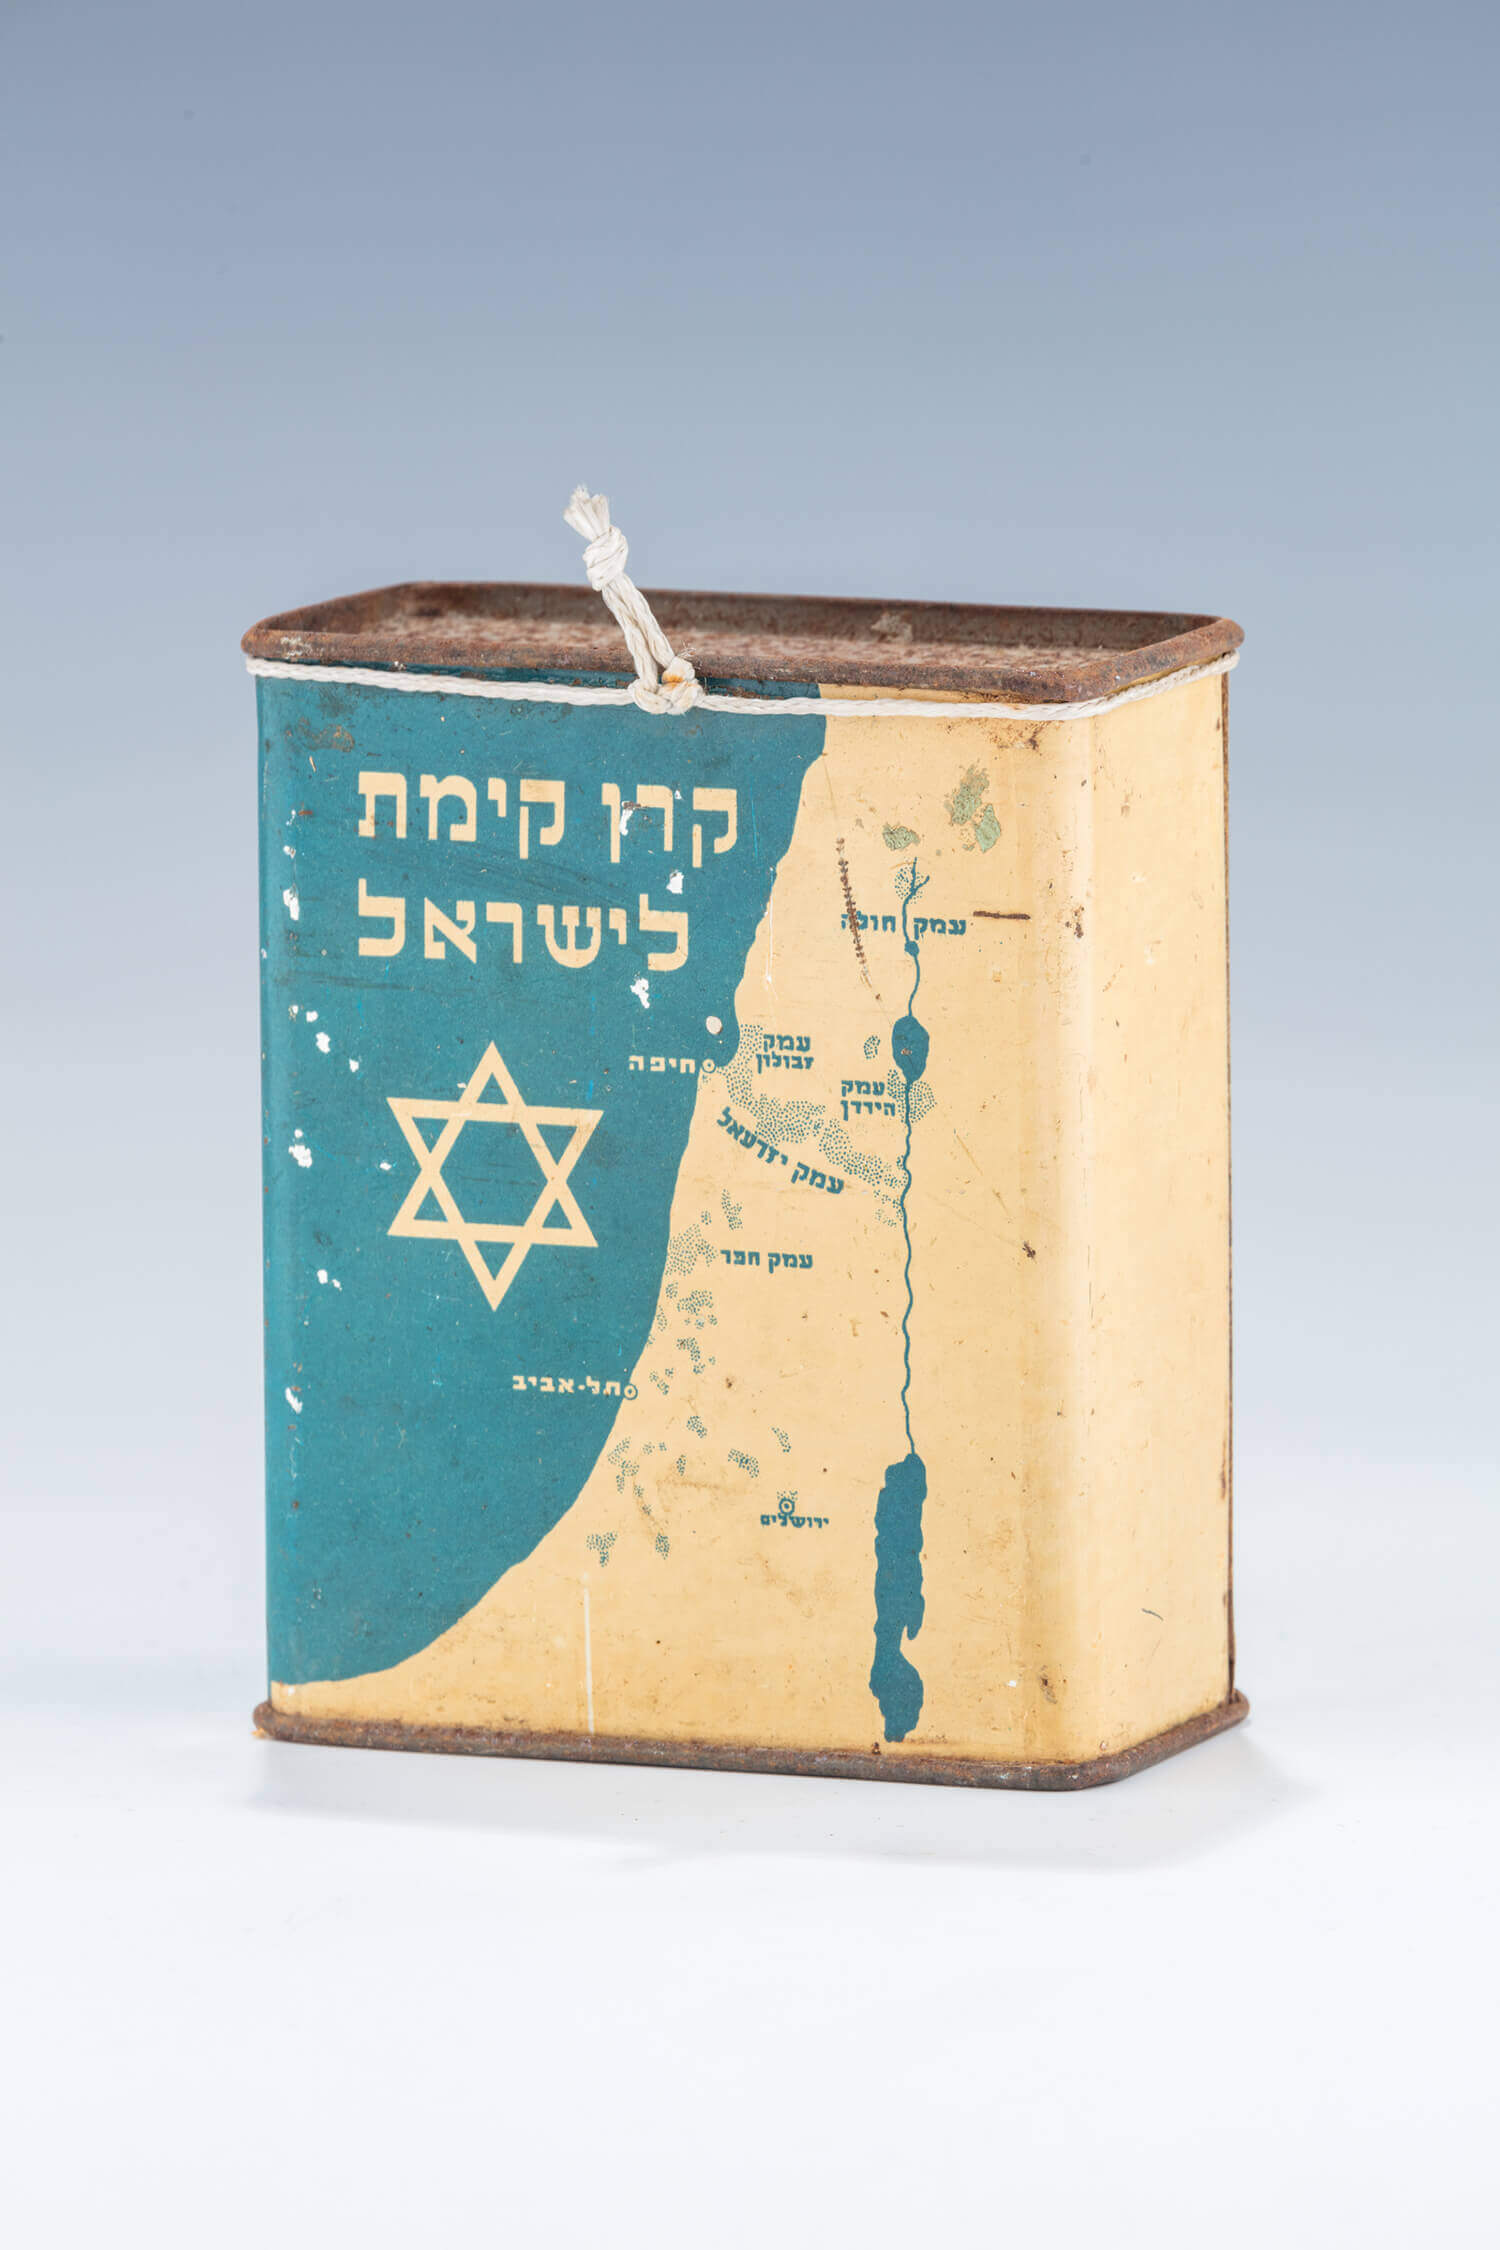 004. AN EARLY JNF COLLECTION BOX